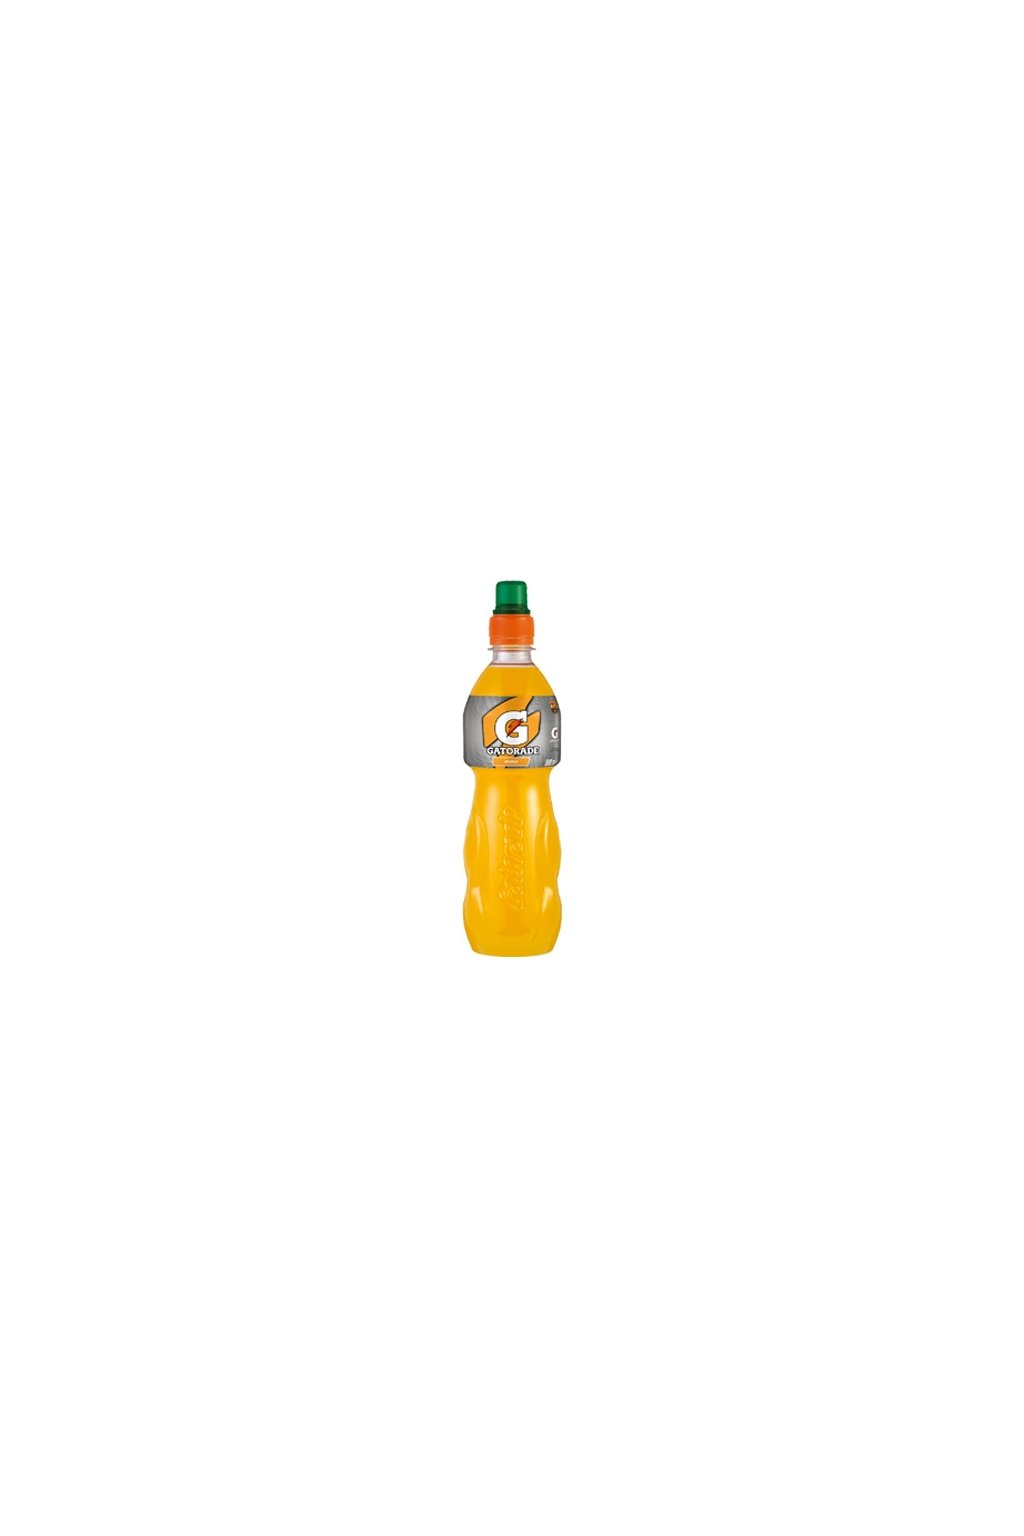 gatorade 260218956 0 5 pet orange 0